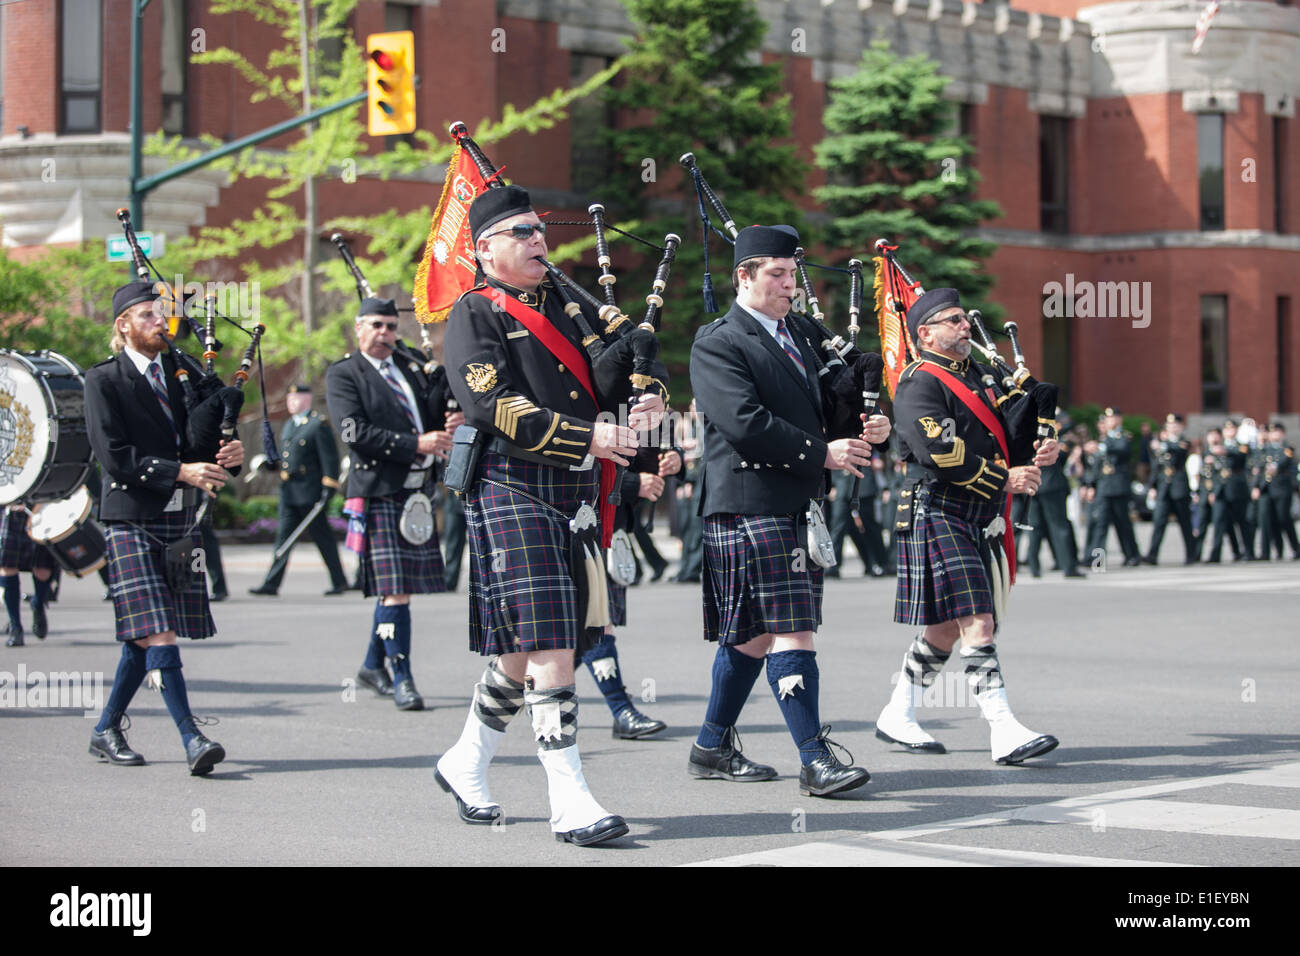 London, Ontario, Canada. 1st June 2014. Active and veteran members of the Canadian Army's 1st Hussars parade through Stock Photo